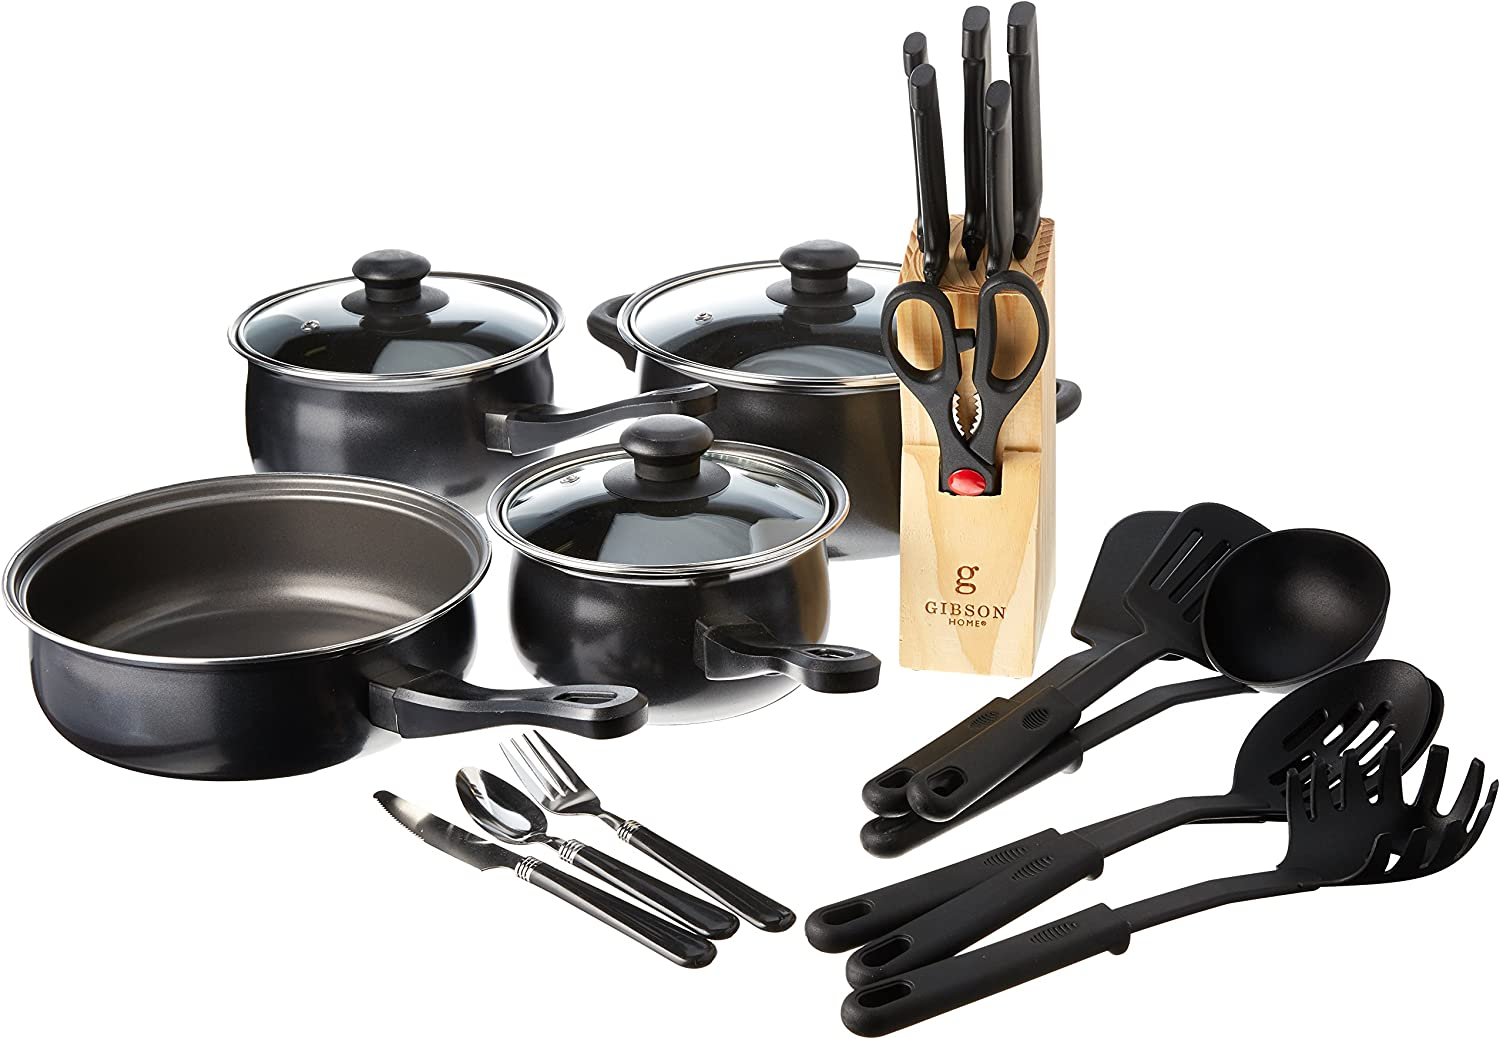 Gibson Home Back to Basics Nonstick Carbon Steel Cookware Set, 32-Piece, Black